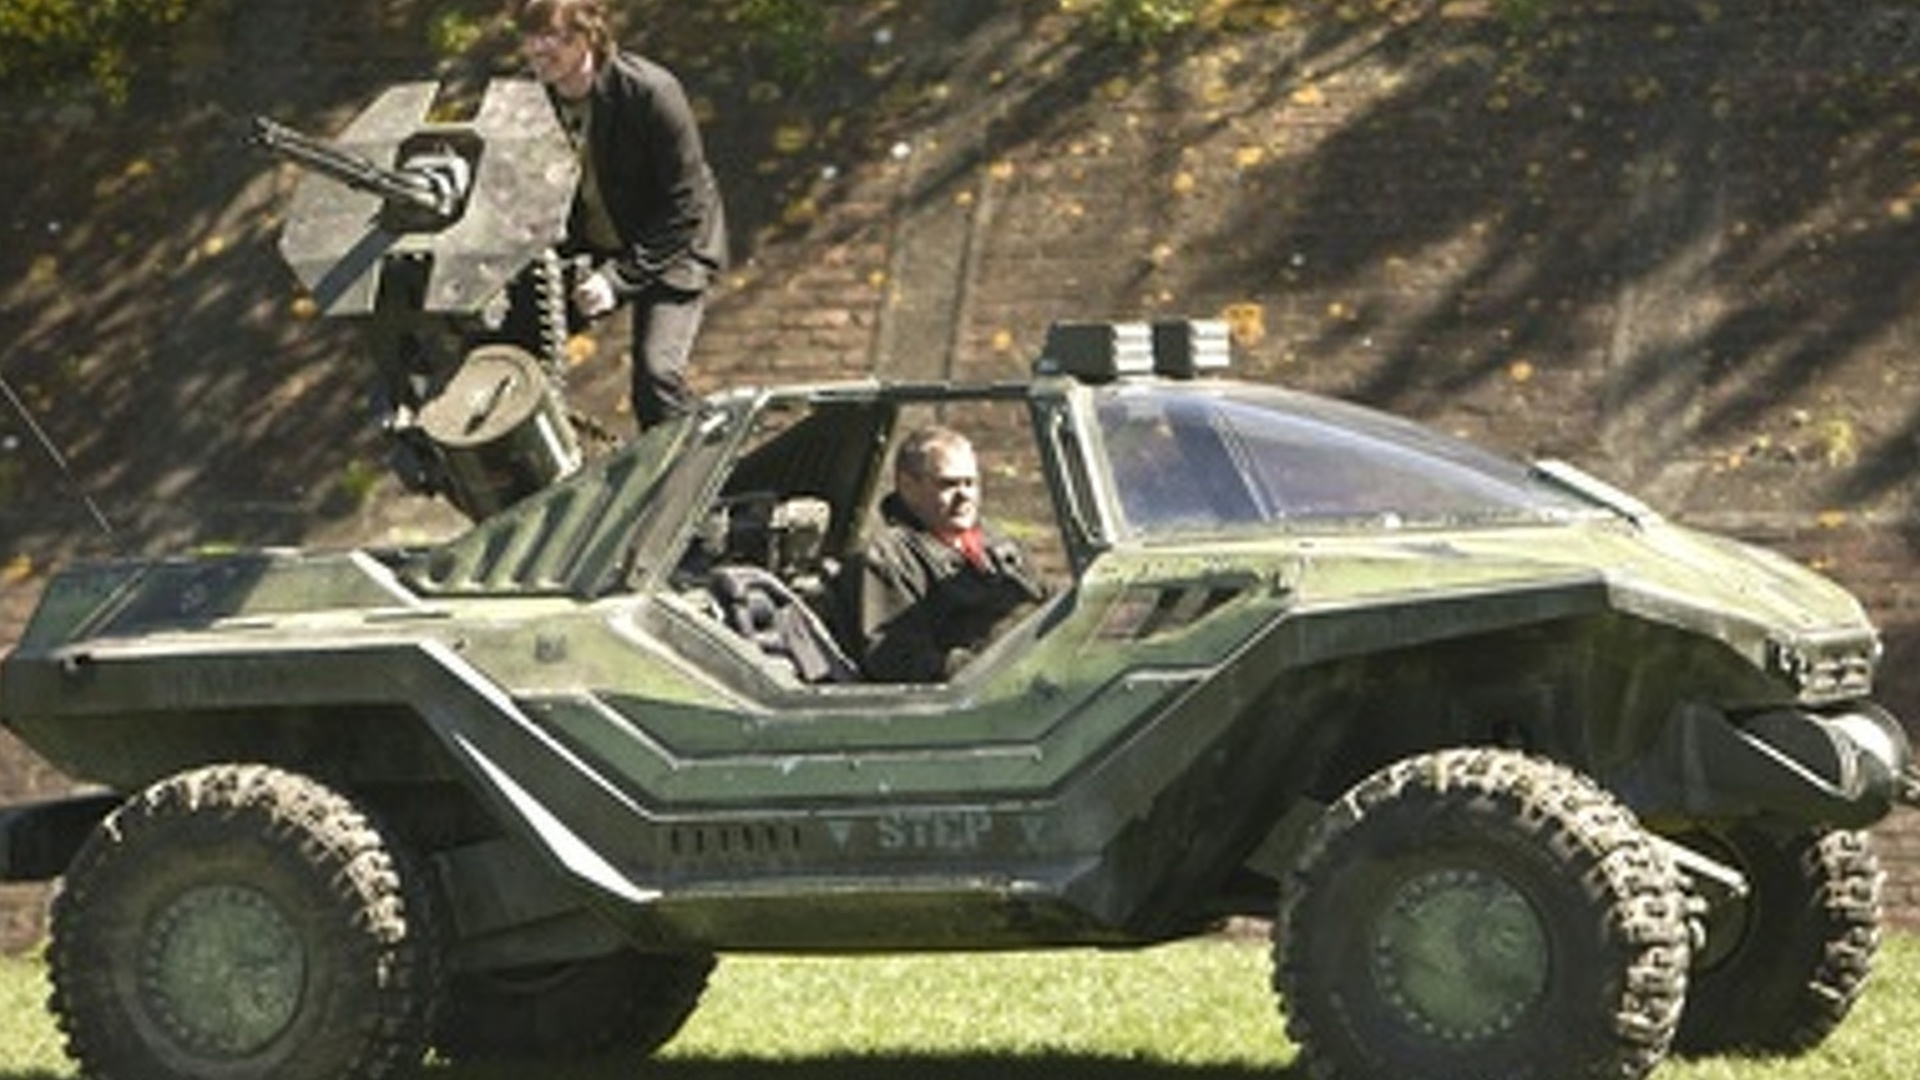 Real Life Halo Vehicles: Video Game: Halo Warthog Real Life Vehicle Goes For Test Drive